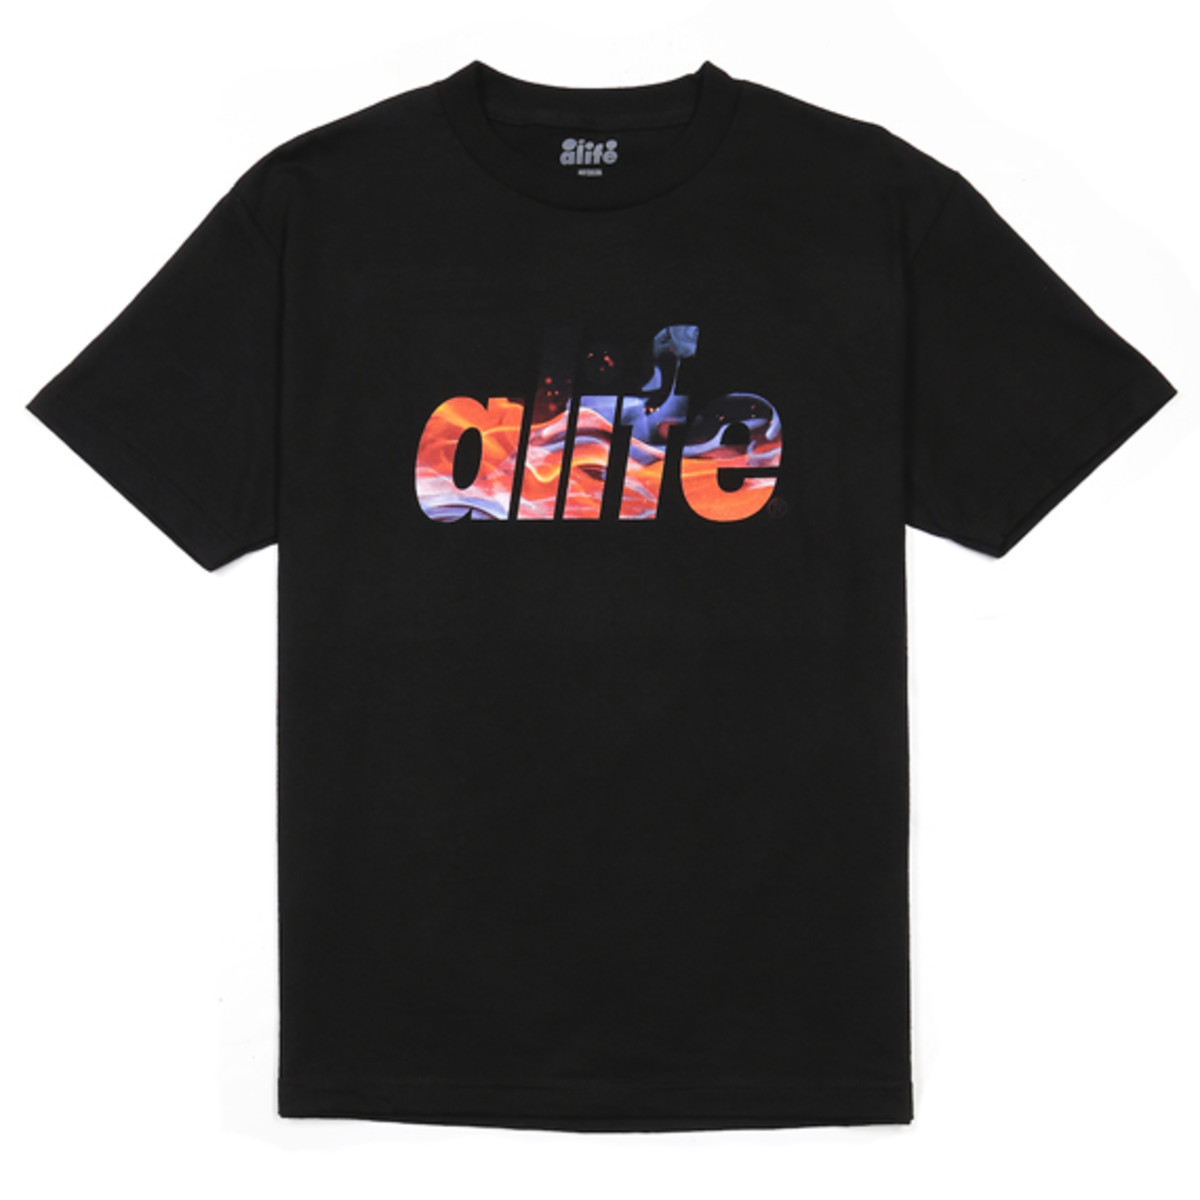 alife-tshirts-october-2013-releases-05